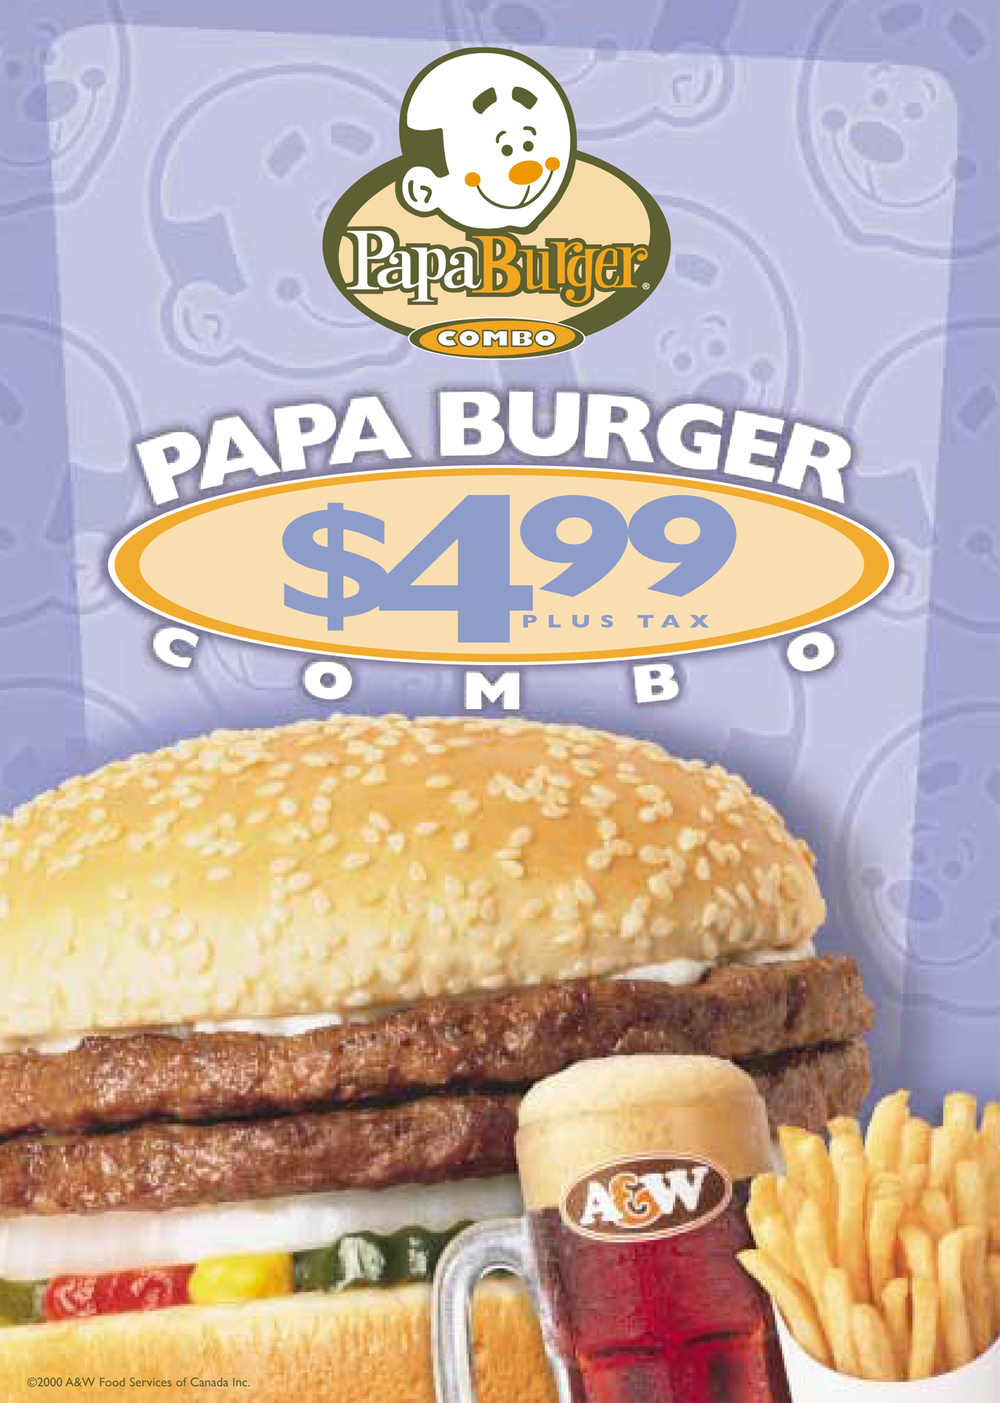 A&W Burger Family Papa Burger Relaunch Window Poster 52 x 73